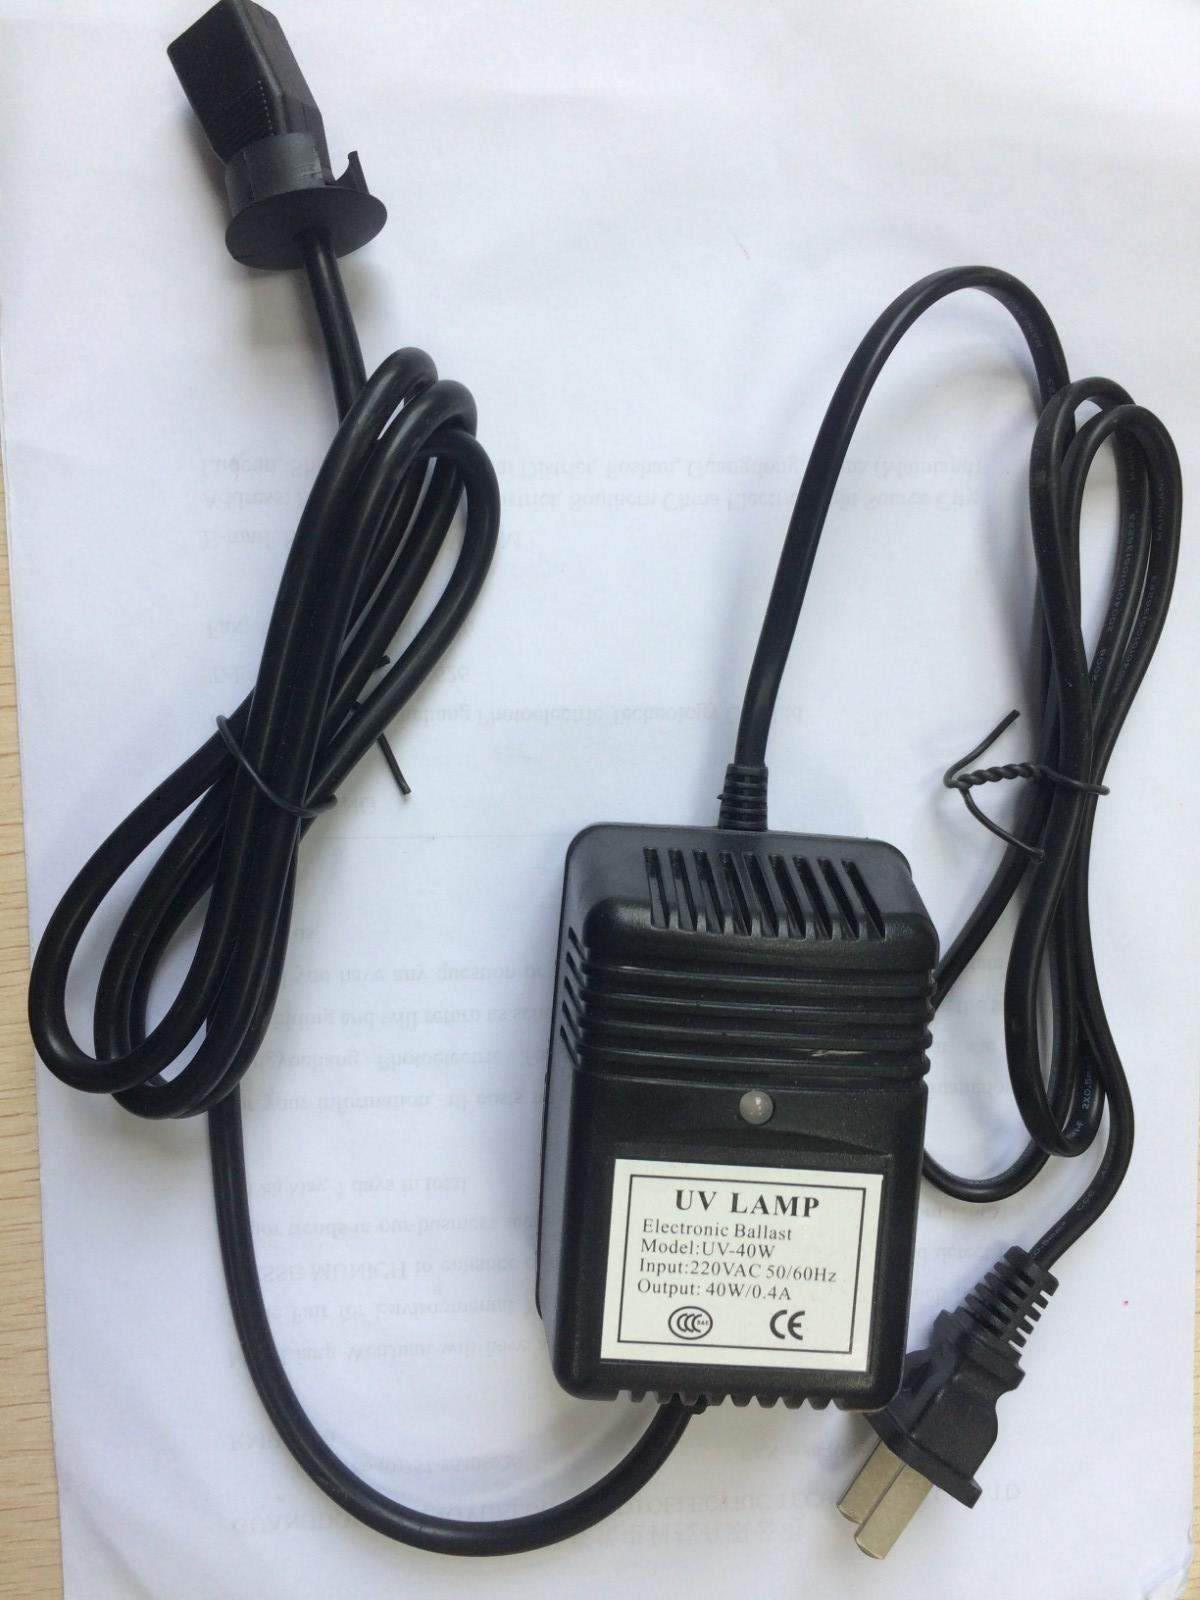 LiangYueLiang preheat electronic ballast for uv lamp for-sale for domestic-1